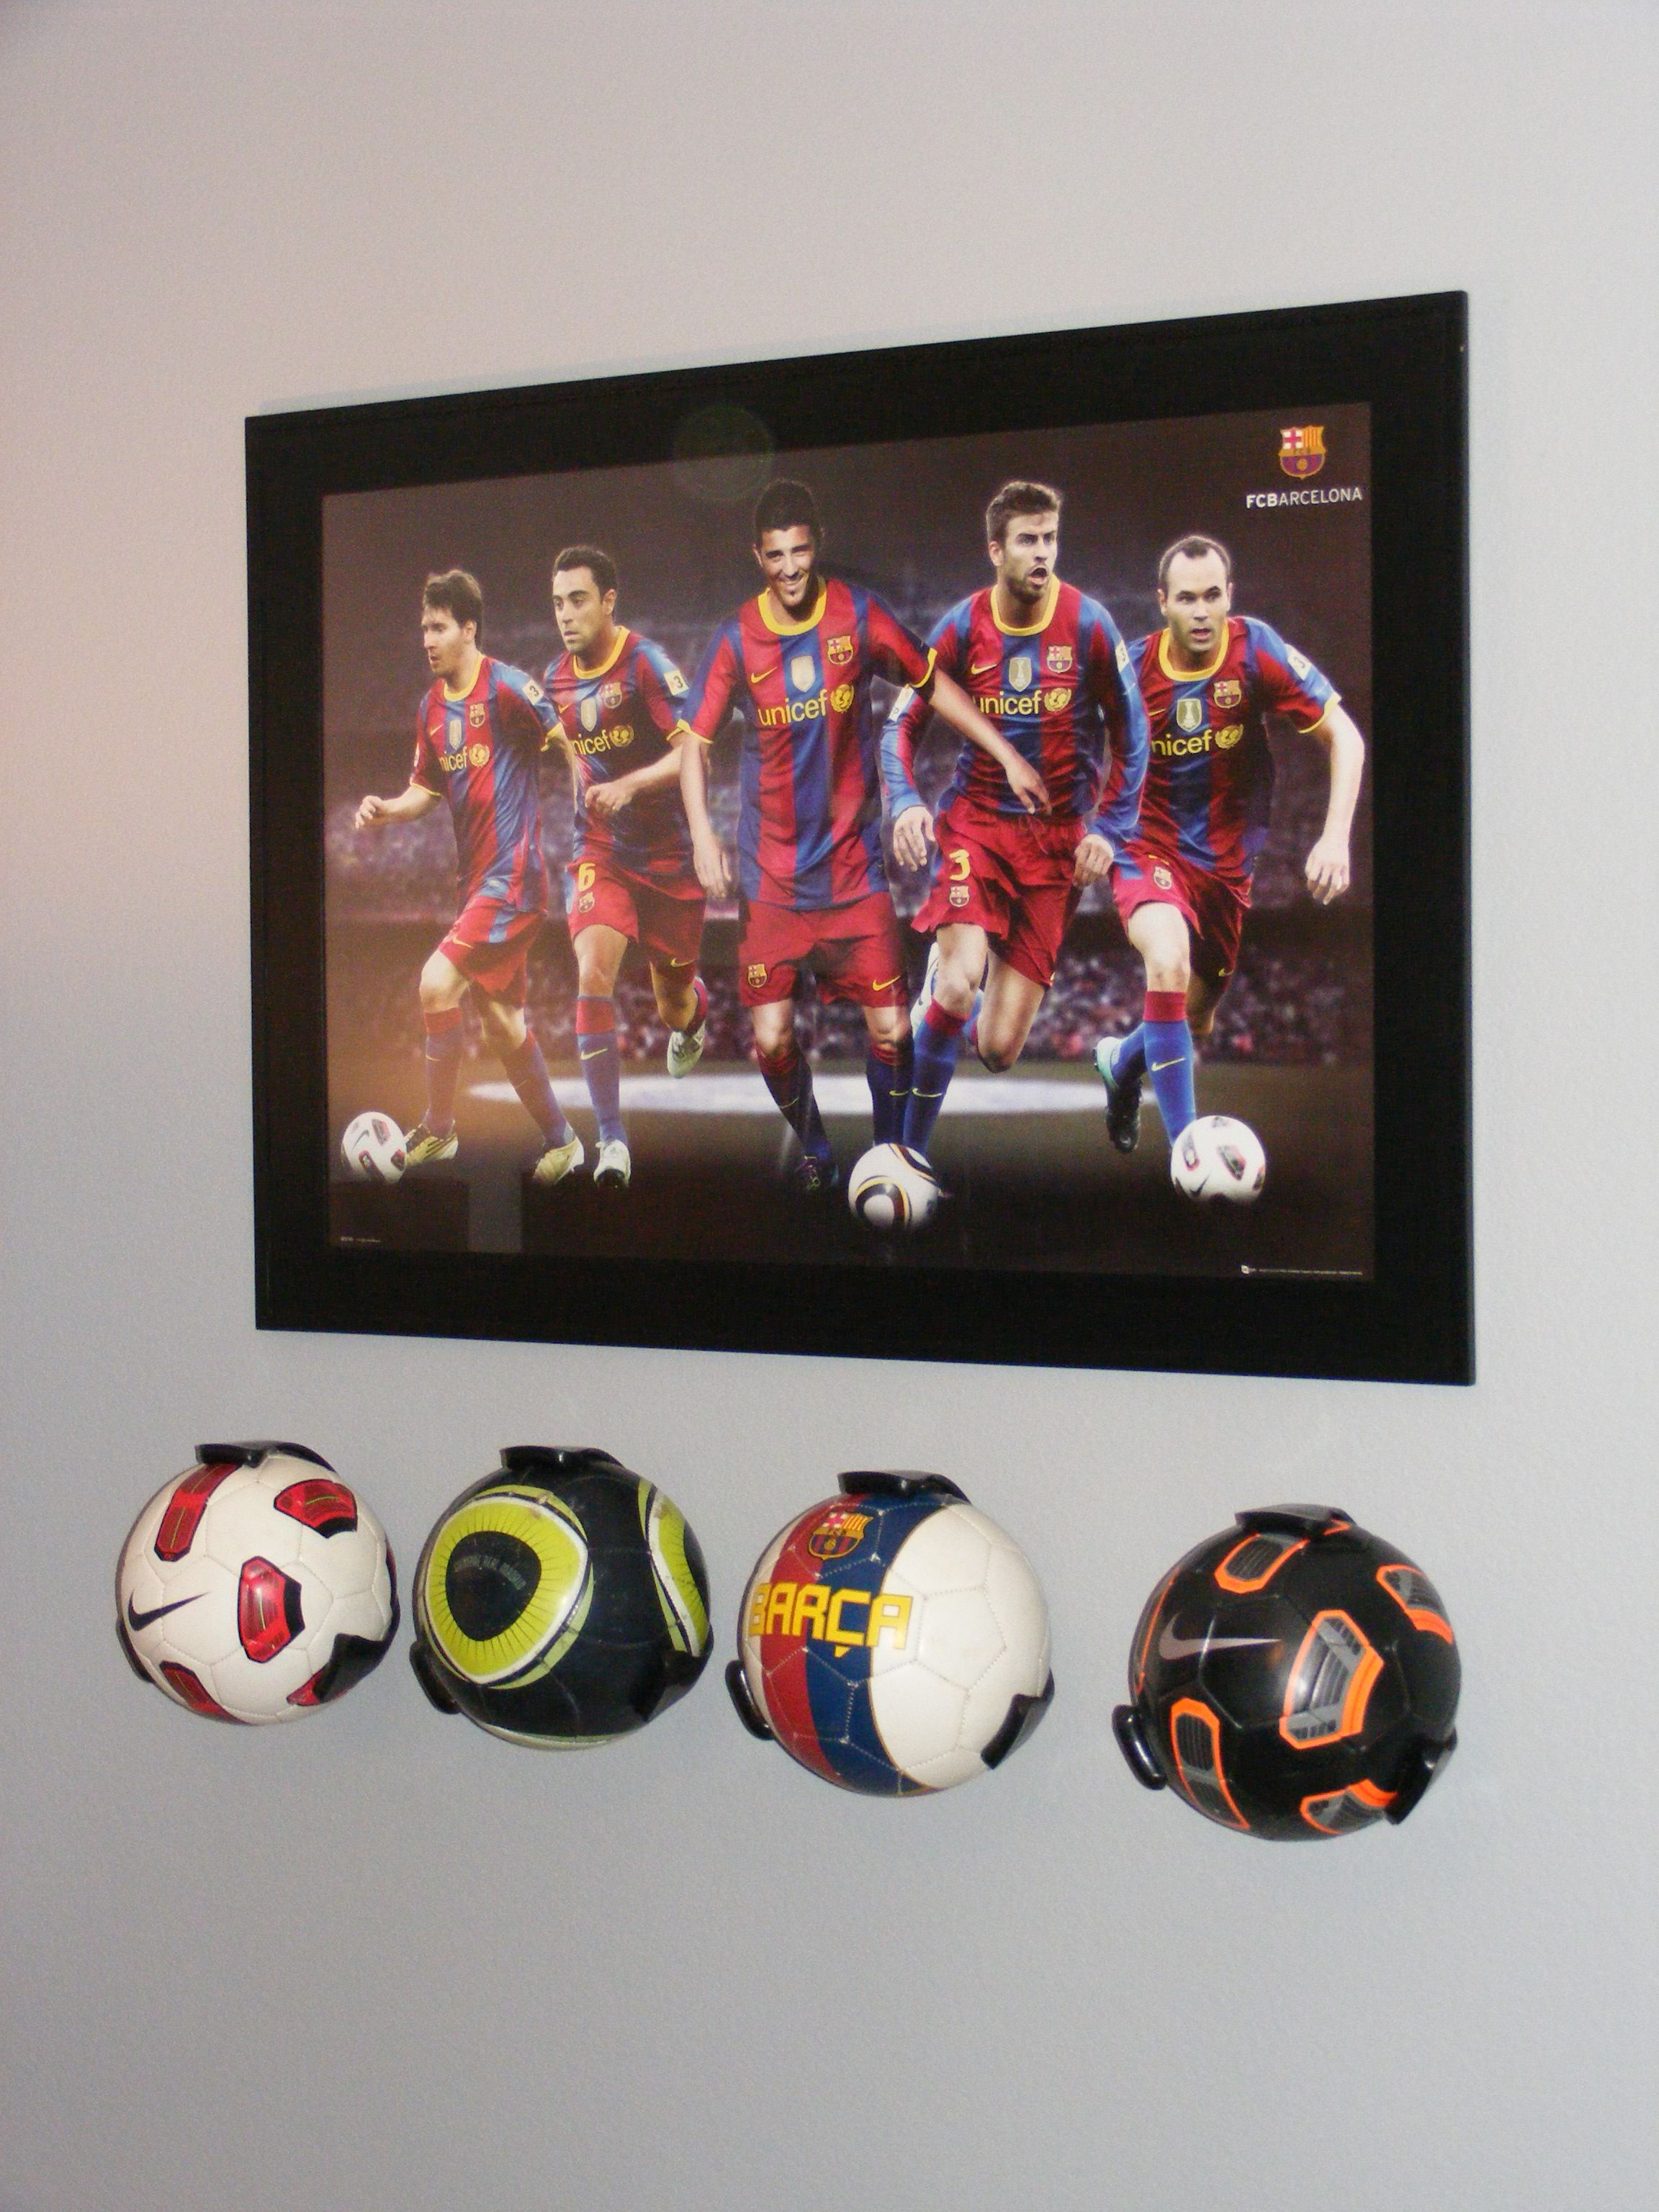 Boys soccer bedroom ideas - Mac S Room Cool Soccer Ball Holders From The Container Store Called Ball Claws